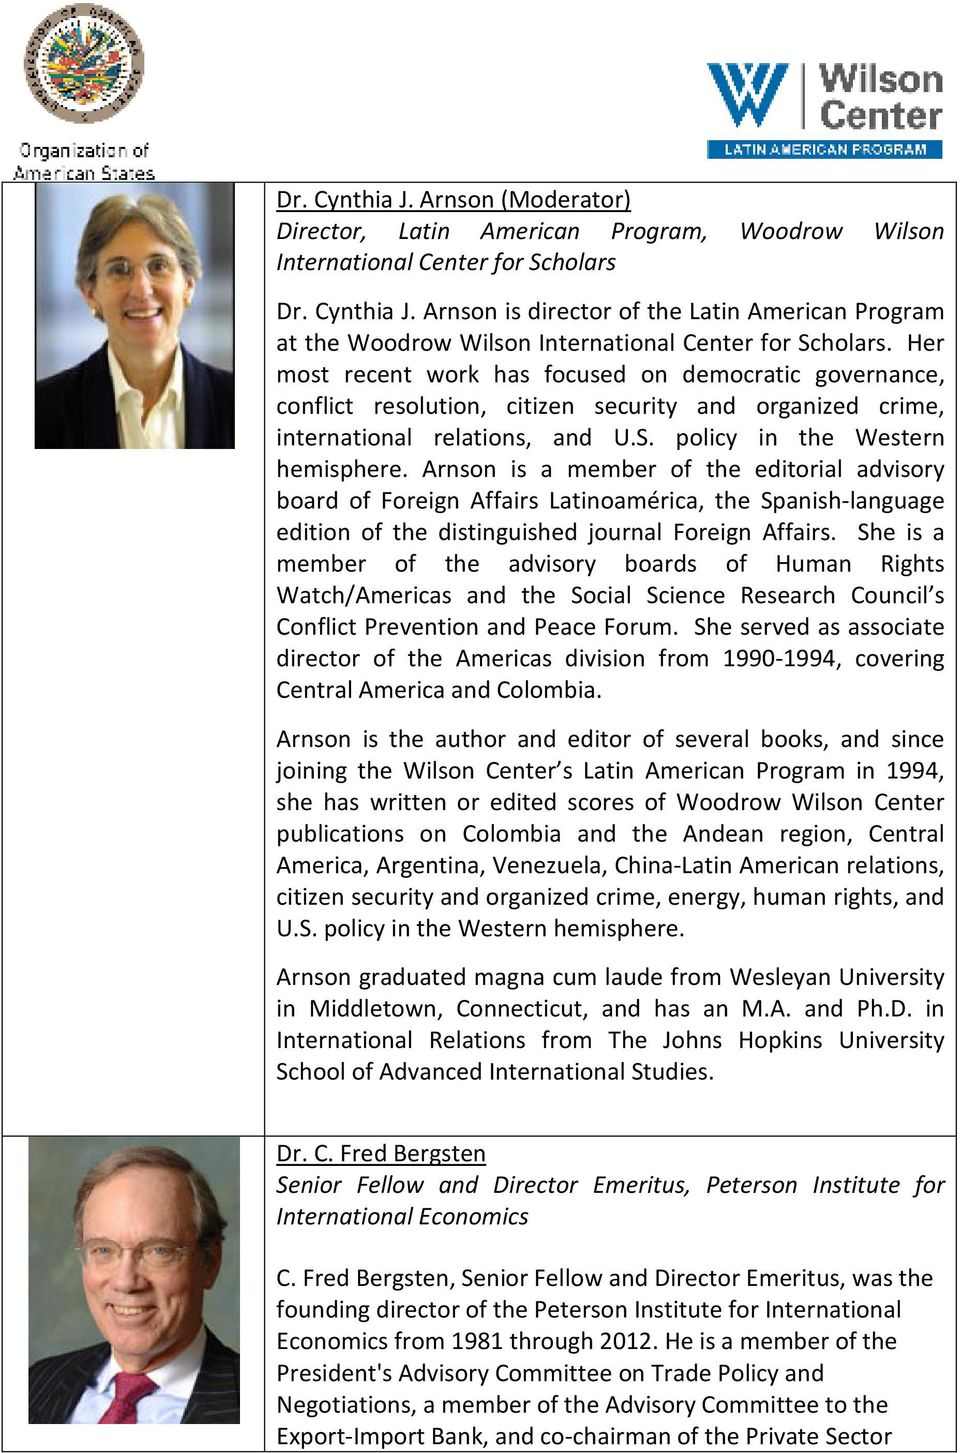 Arnson is a member of the editorial advisory board of Foreign Affairs Latinoamérica, the Spanish-language edition of the distinguished journal Foreign Affairs.